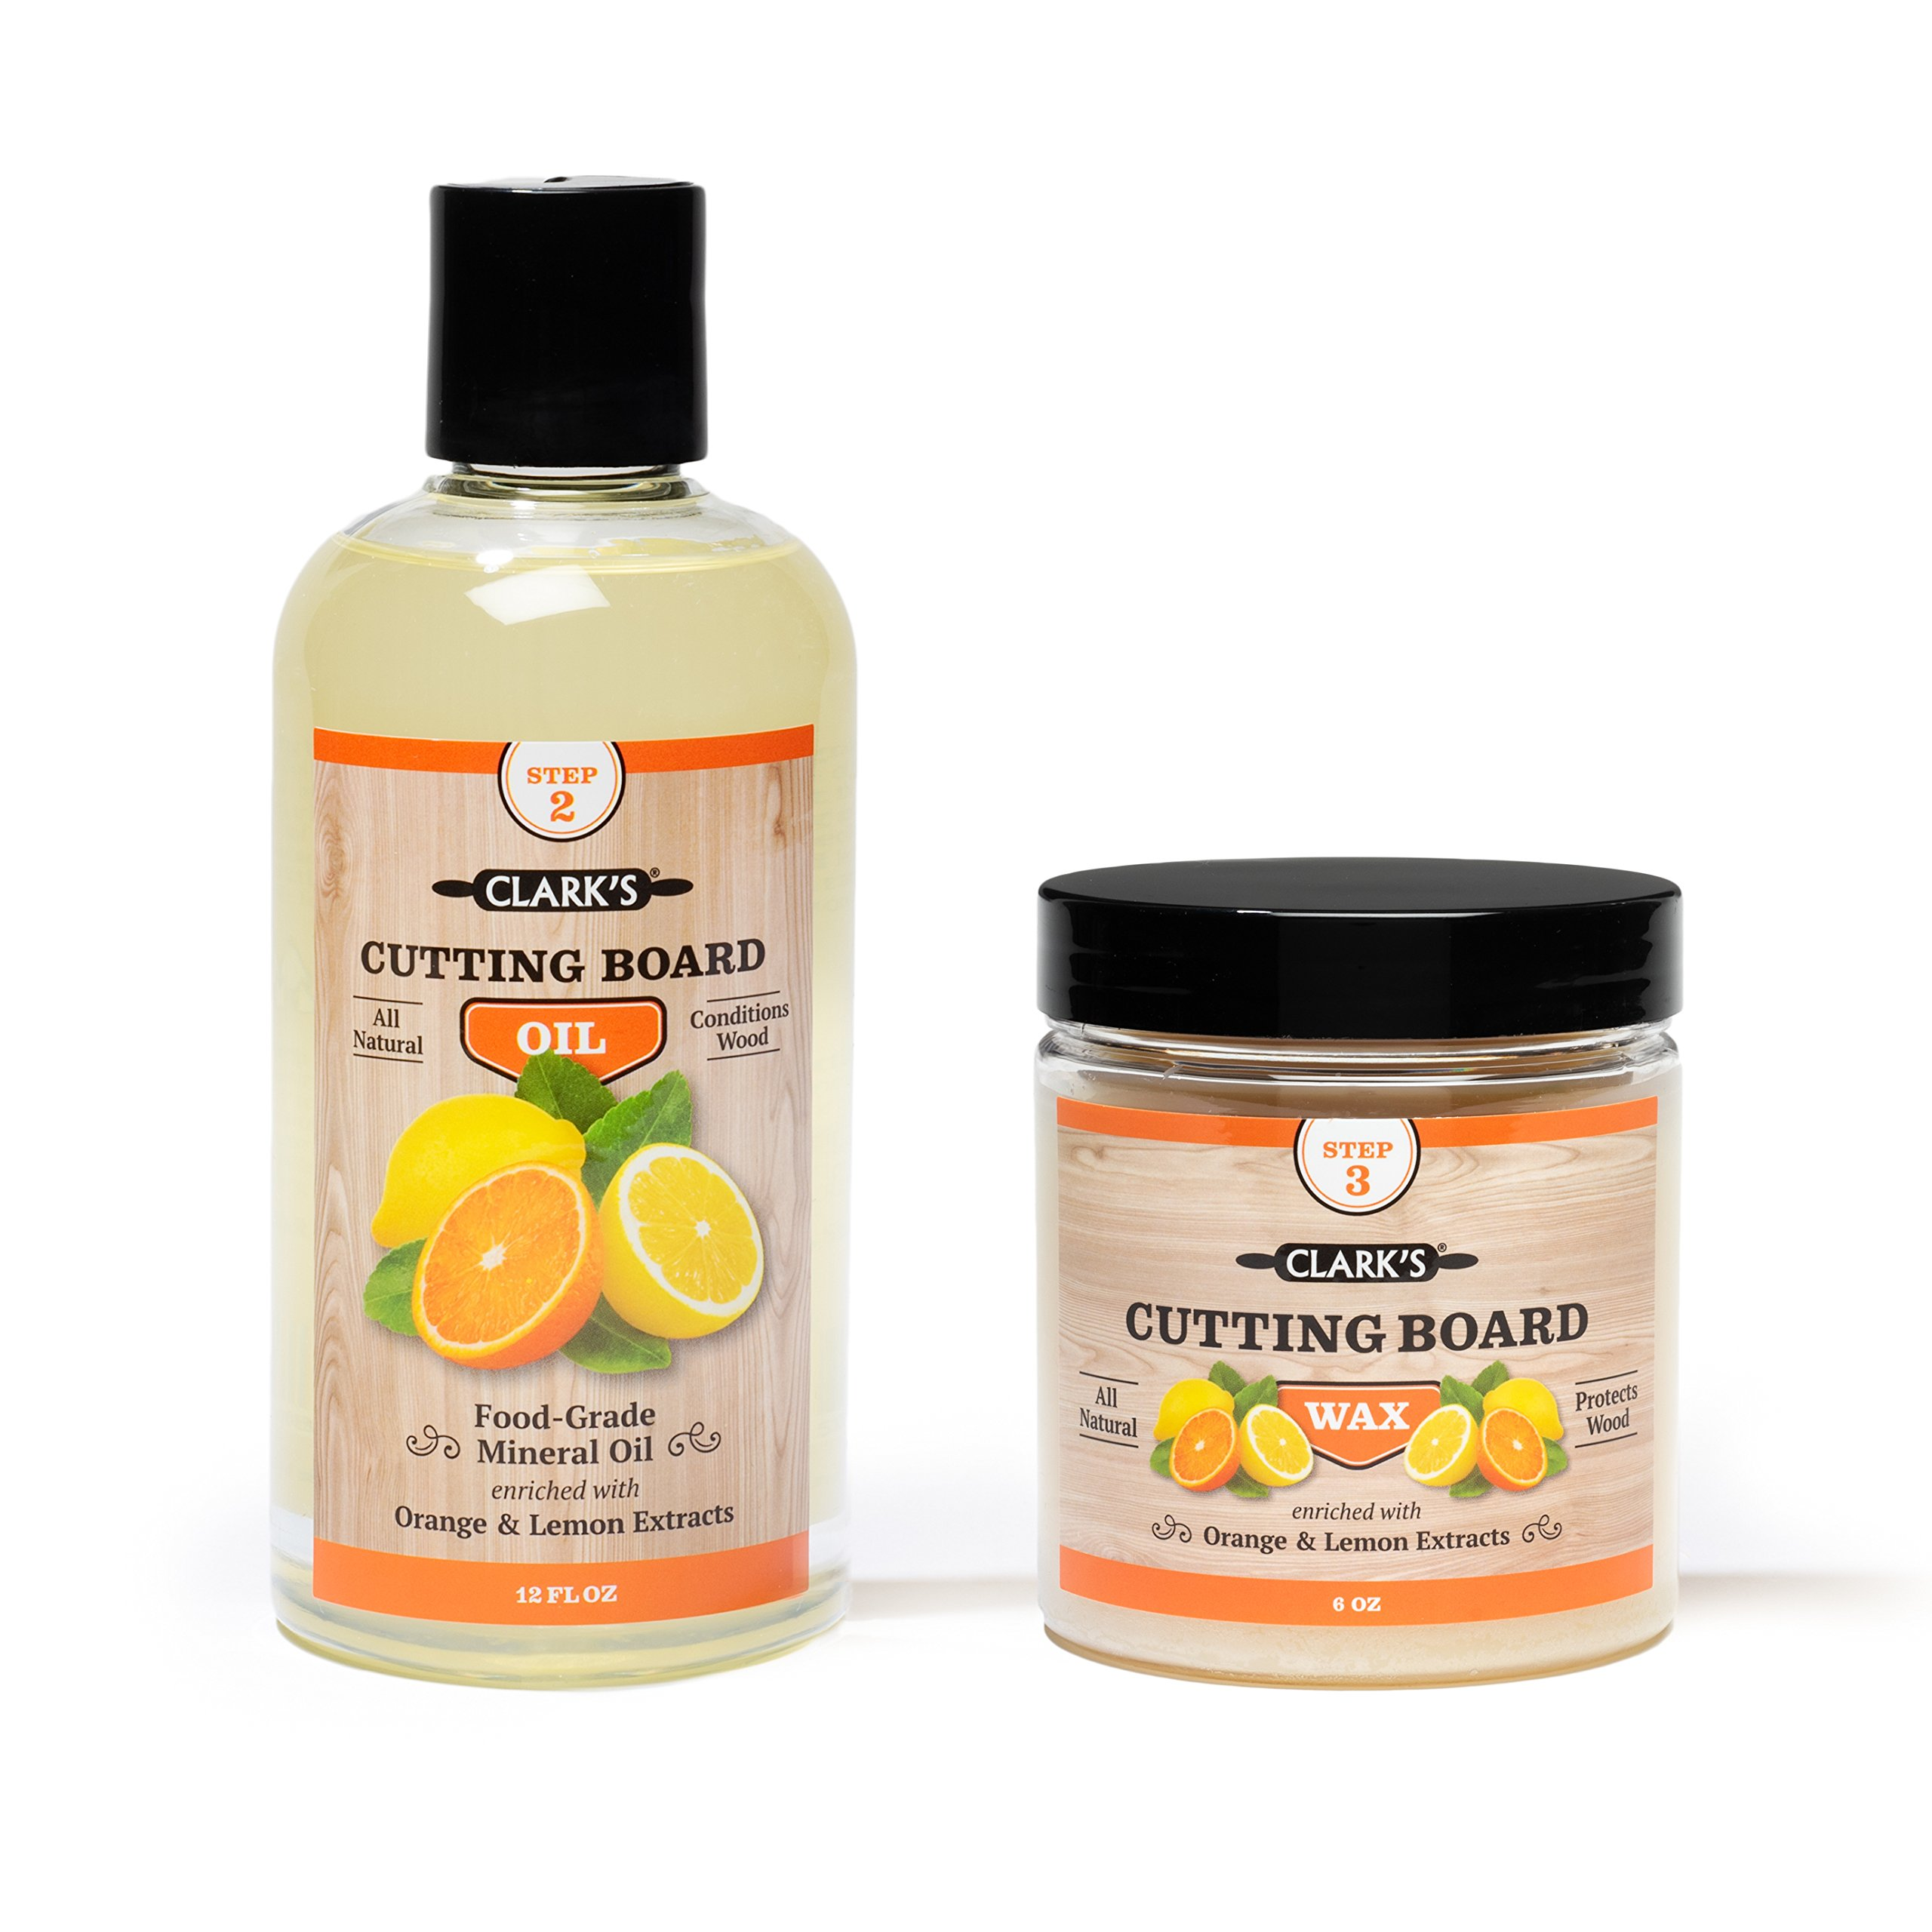 CLARK'S Cutting Board Oil & Wax (2 Bottle Set) | Includes CLARK'S Cutting Board Oil (12oz) & CLARK'S Finish Wax (6oz) | Orange & Lemon Scent